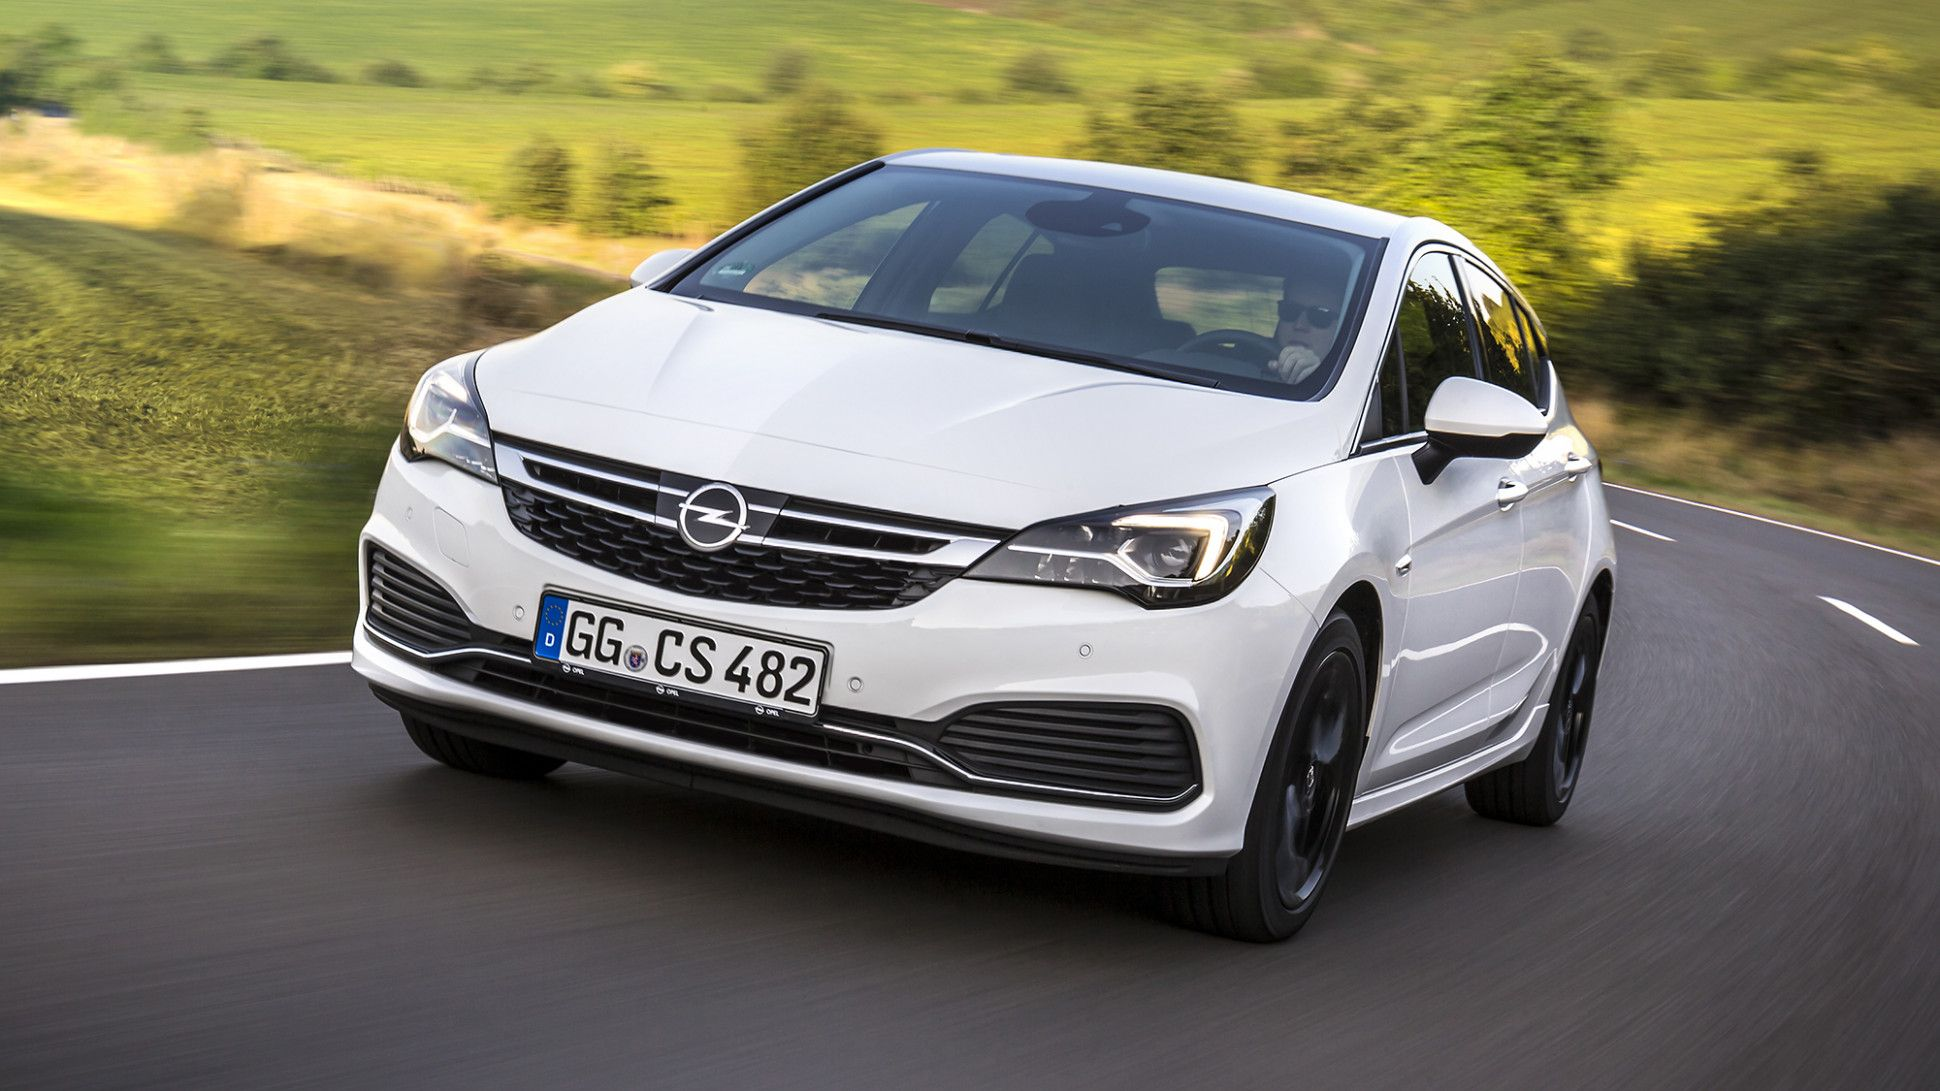 Opel Astra 2020 White Price 2020 Car Reviews